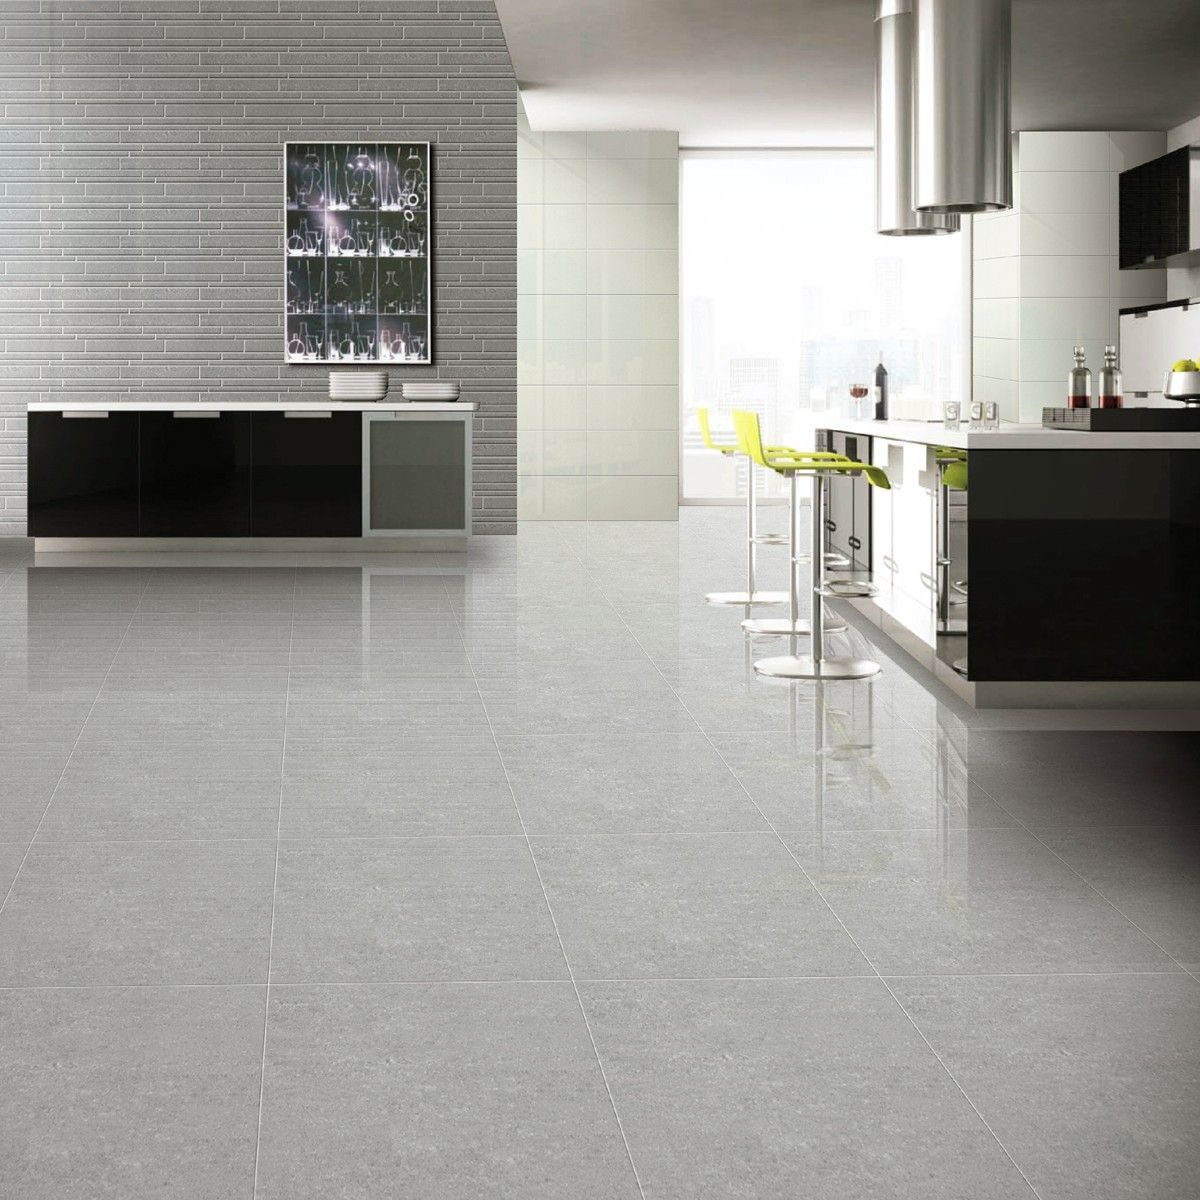 Kitchen Floor Tile Gray 60x60 Super Polished Grey Porcelain Floor Tiles Tile